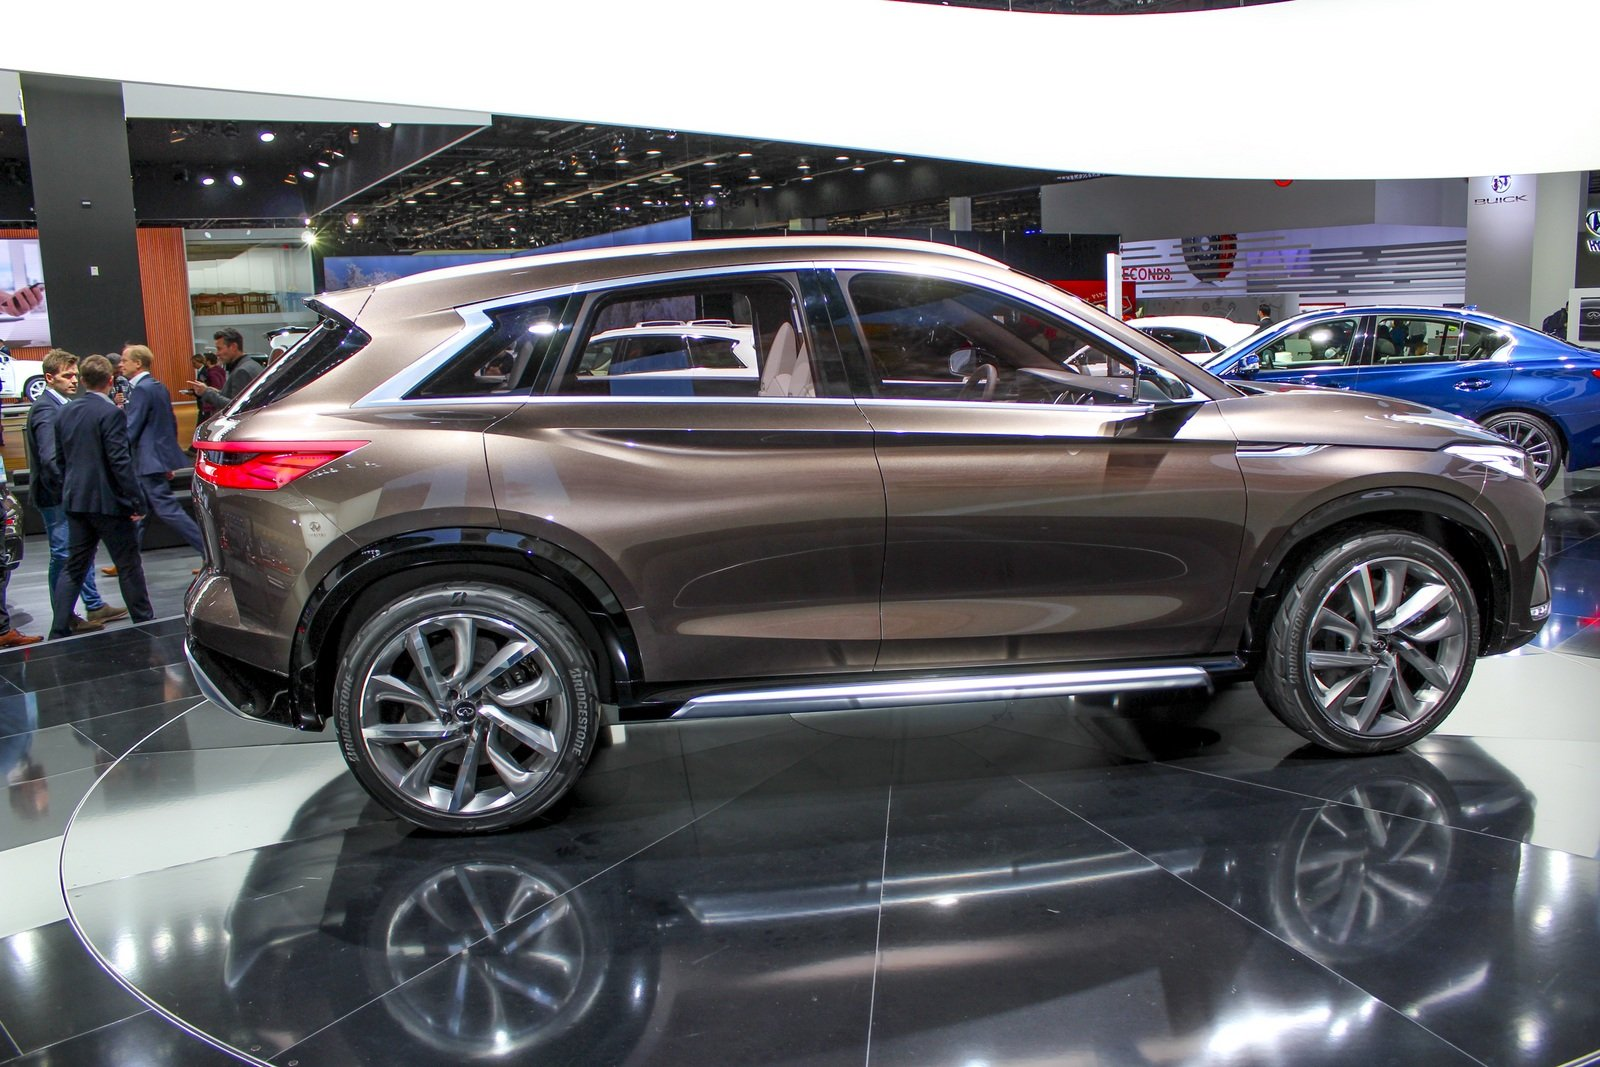 2017 infiniti qx50 concept picture 702021 car review. Black Bedroom Furniture Sets. Home Design Ideas